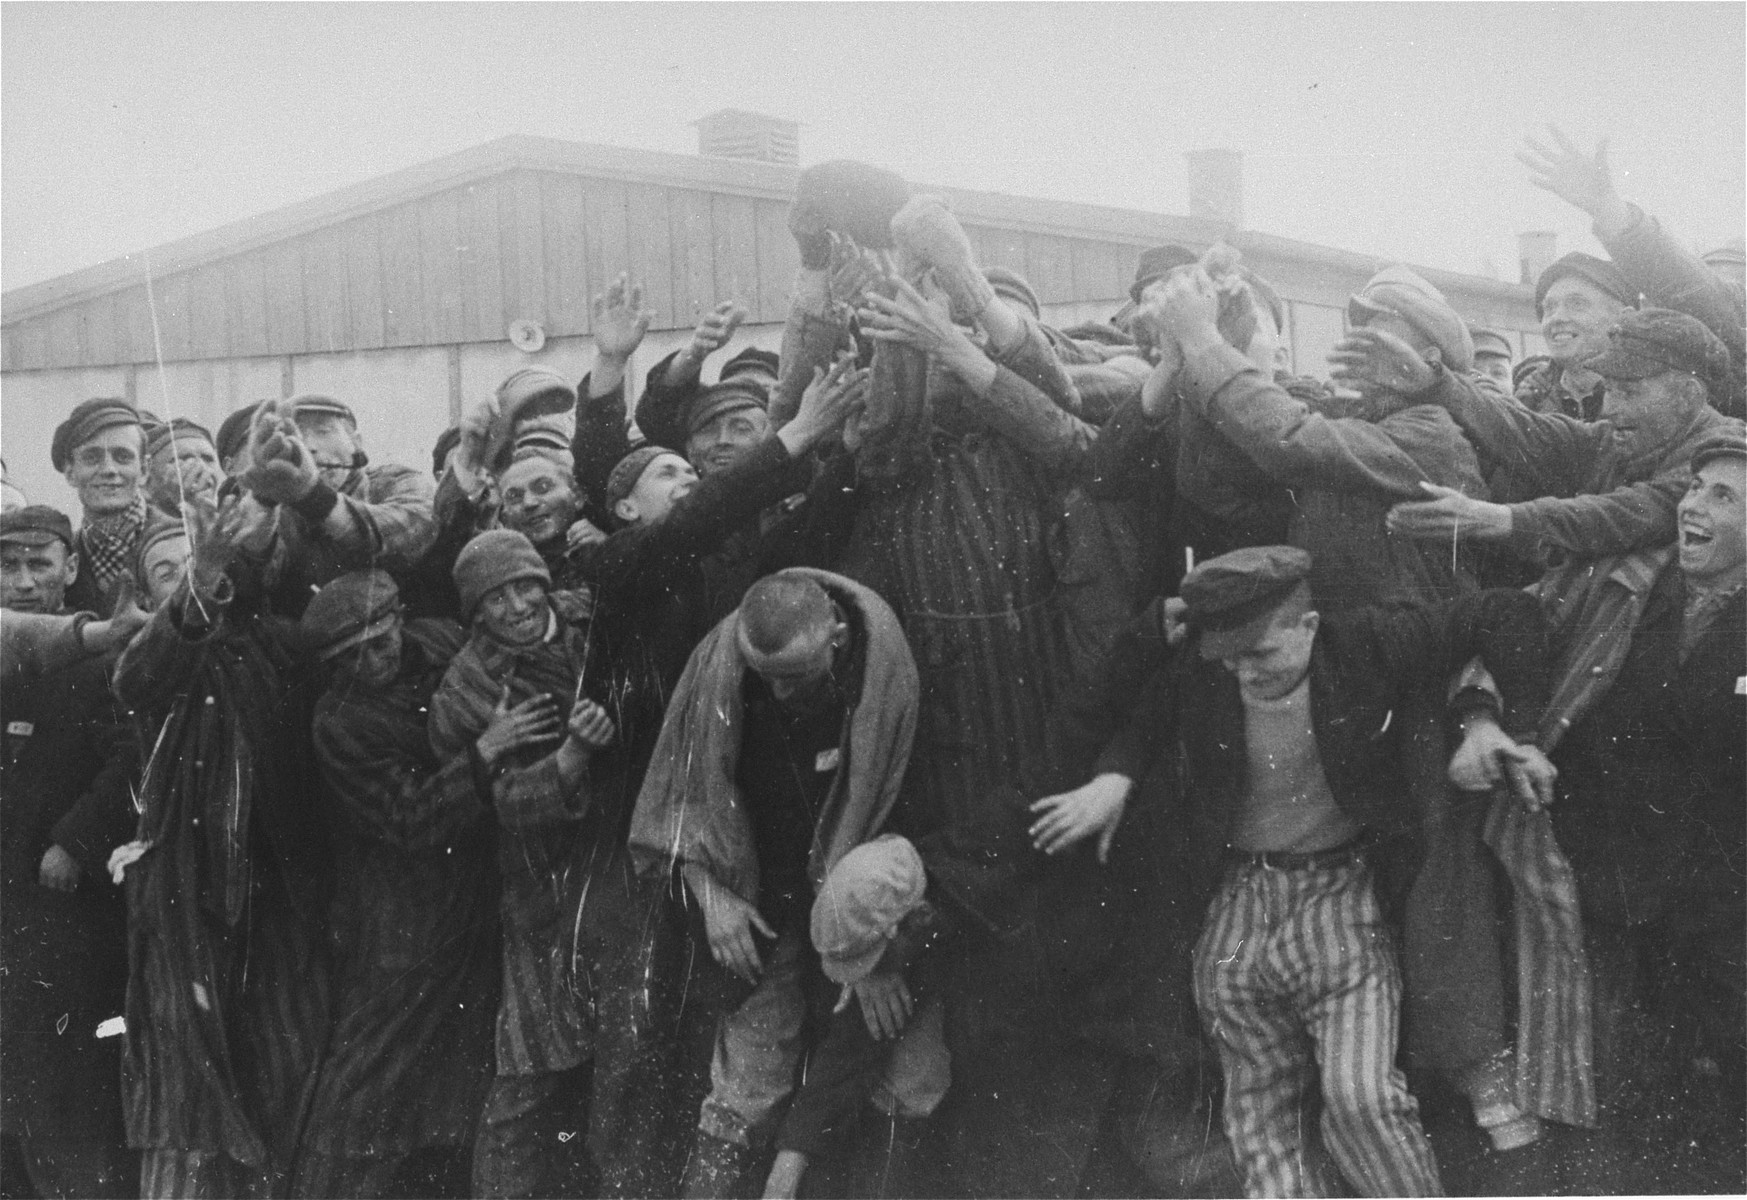 "Survivors fight for cigarettes thrown to them by American troops after the liberation of the Dachau concentration camp.  Original caption reads: ""Dachau Concentration Camp.  Horrors worse than those found in the German concentration camps of Buchenwald and Belsen were discovered in the stinking hell-hole of Dachau, captured by troops of the 42nd and 45th Infantry Divisions of the Seventh U.S. Army April 30, 1945.  More than 32,000 prisoners were liberated, among them some Englishmen, Canadians and Americans.  The camp was formally surrendered by an SS lieutenant carrying a white flag, accompanied by a Swiss Red Cross official, but SS troops opened fire as American troops approached the main entrance.  The Germans were shot down.  Three prisoners were electrocuted when they tried to burst through the electrified wire barrier to welcome the Americans.  SS guards opened fire on other prisoners who went wild with joy and rushed to meet the liberating troops.  Prisoners with access to records said 9,000 people died of hunger, disease or shooting within the past three months at Dachau.  Four thousand more perished during cold Winter months.  When Americans entered the camp, they found 50 open railway cars standing on a siding, apparently full of dirty clothing but actually found to contain hundreds of corpses piled on top of each other.  They also found a row of kennels where fierce dogs were kept to set after escaping men.  They discovered gas extermination chambers, incinerators full of naked bodies, bodies marked for dissection and the bodies of several small children.    This photo shows: Liberated prisoners scramble for cigarettes thrown to them by men of the Seventh U.S. Army.  Many still wear the striped uniforms of the prison."""